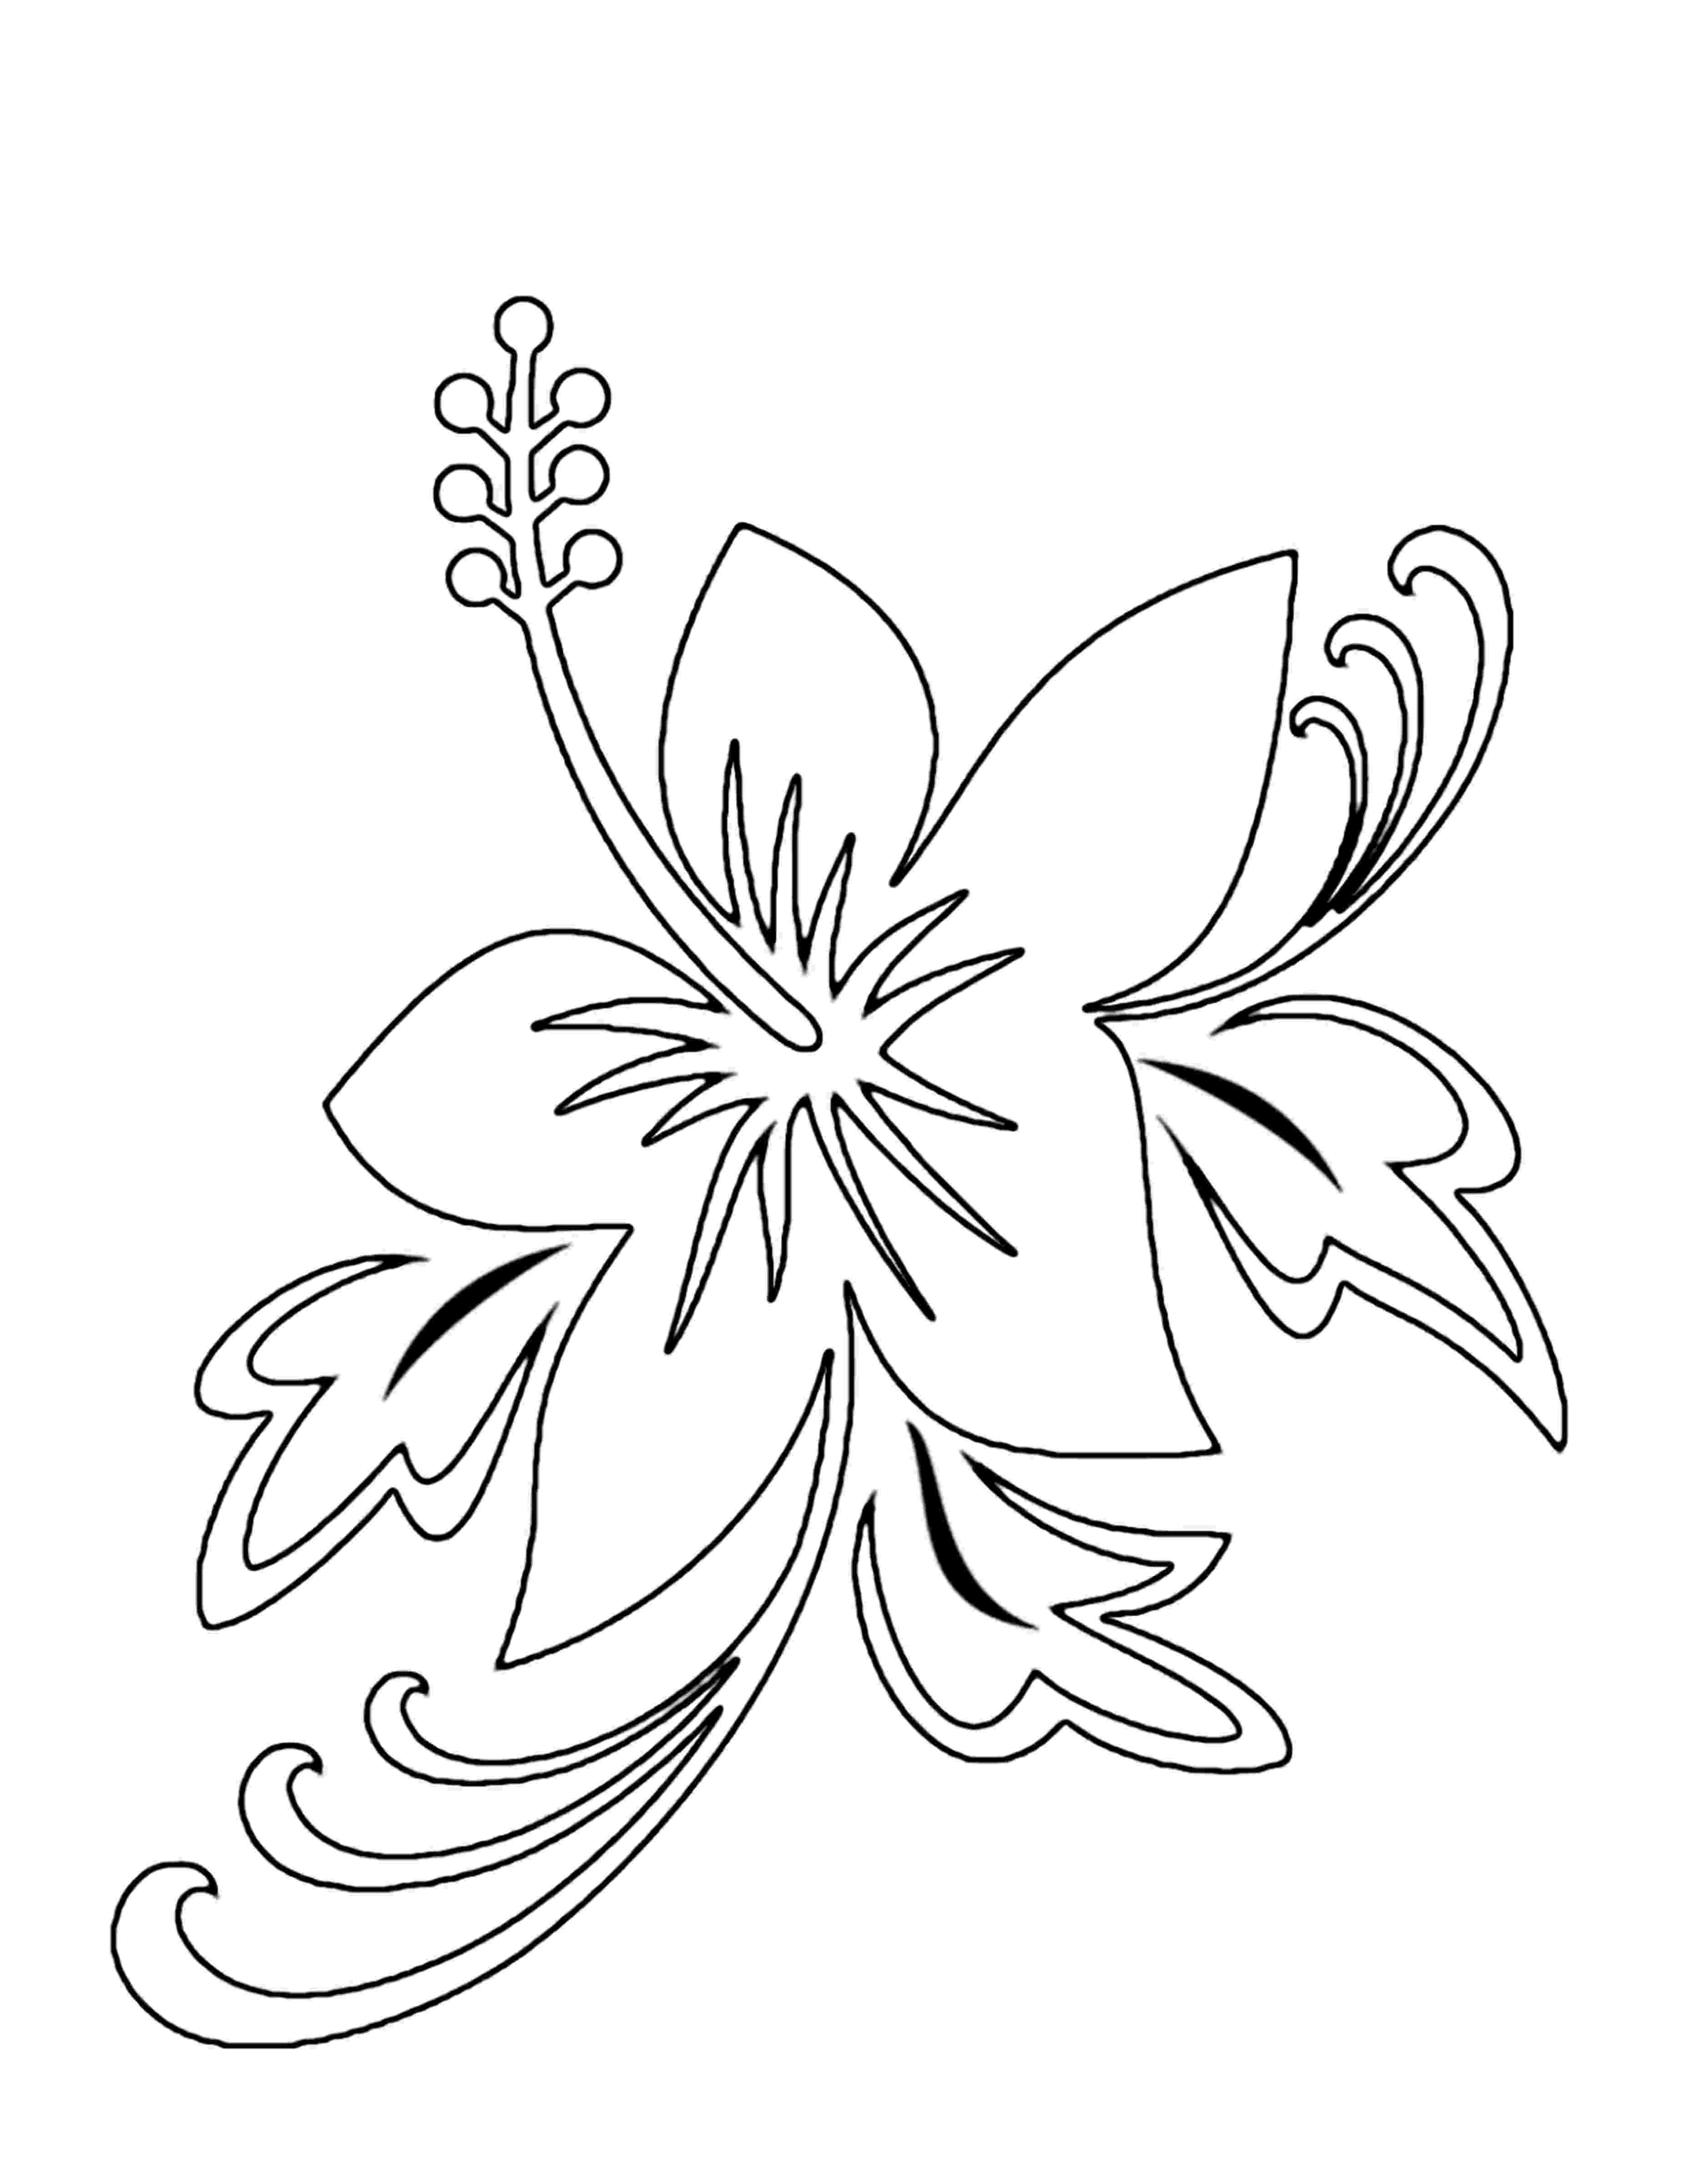 flower coloring sheets for kids free printable flower coloring pages for kids best sheets flower kids for coloring 1 1